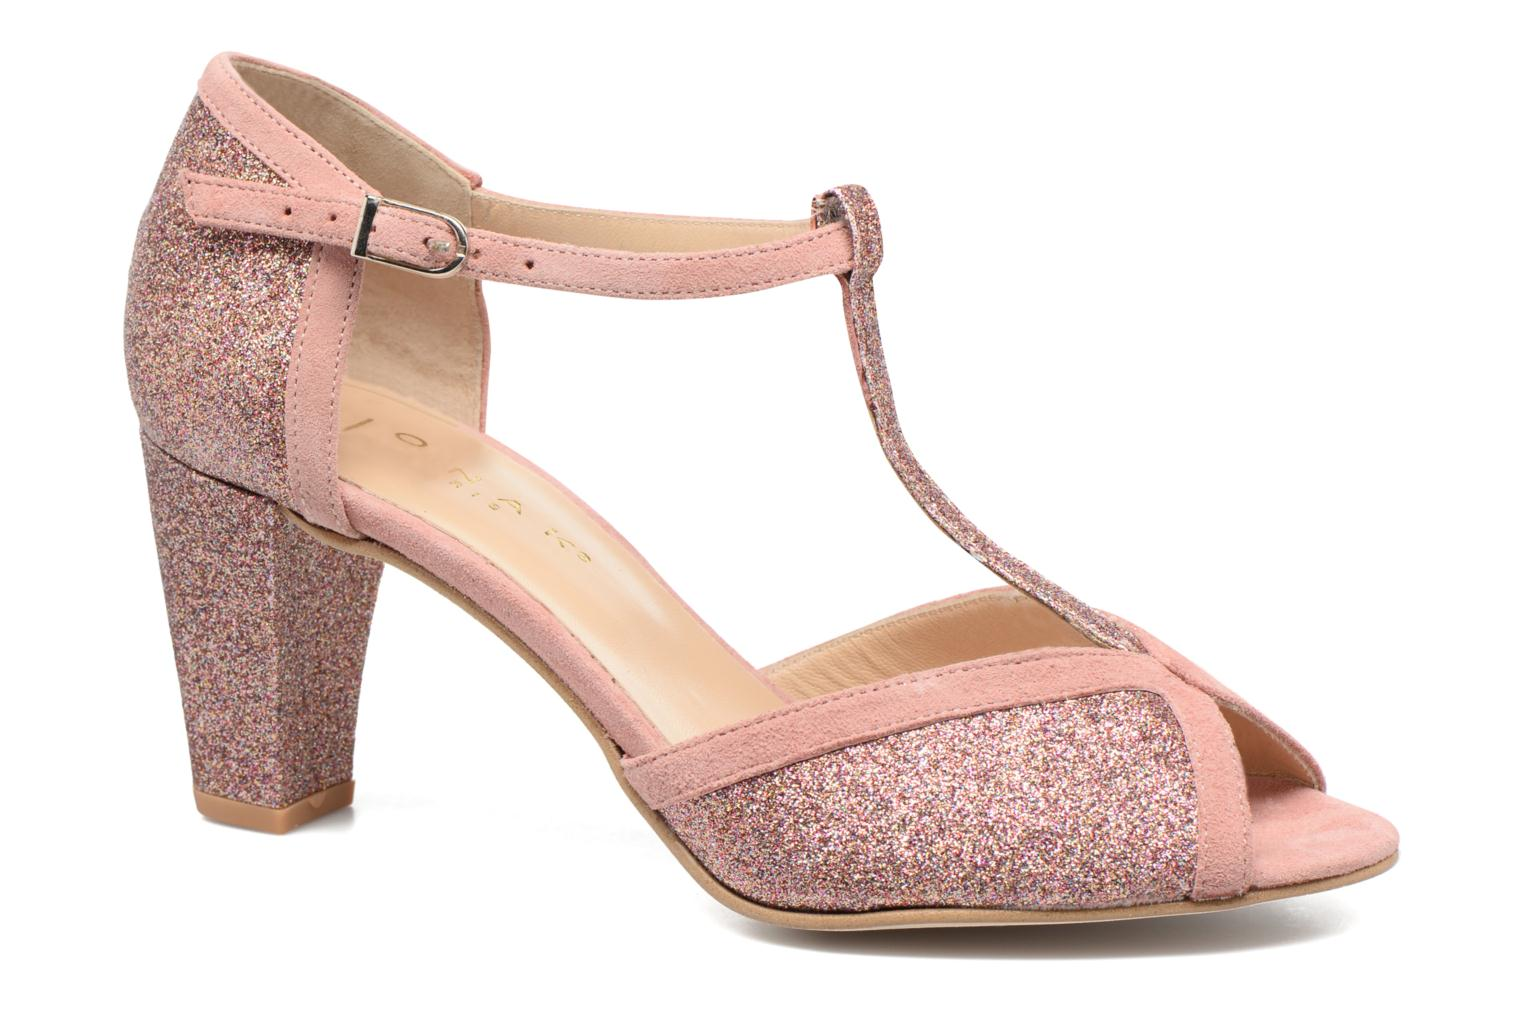 Damaris Velours Rose Pale Ringo + Glitter Fin Multicolore